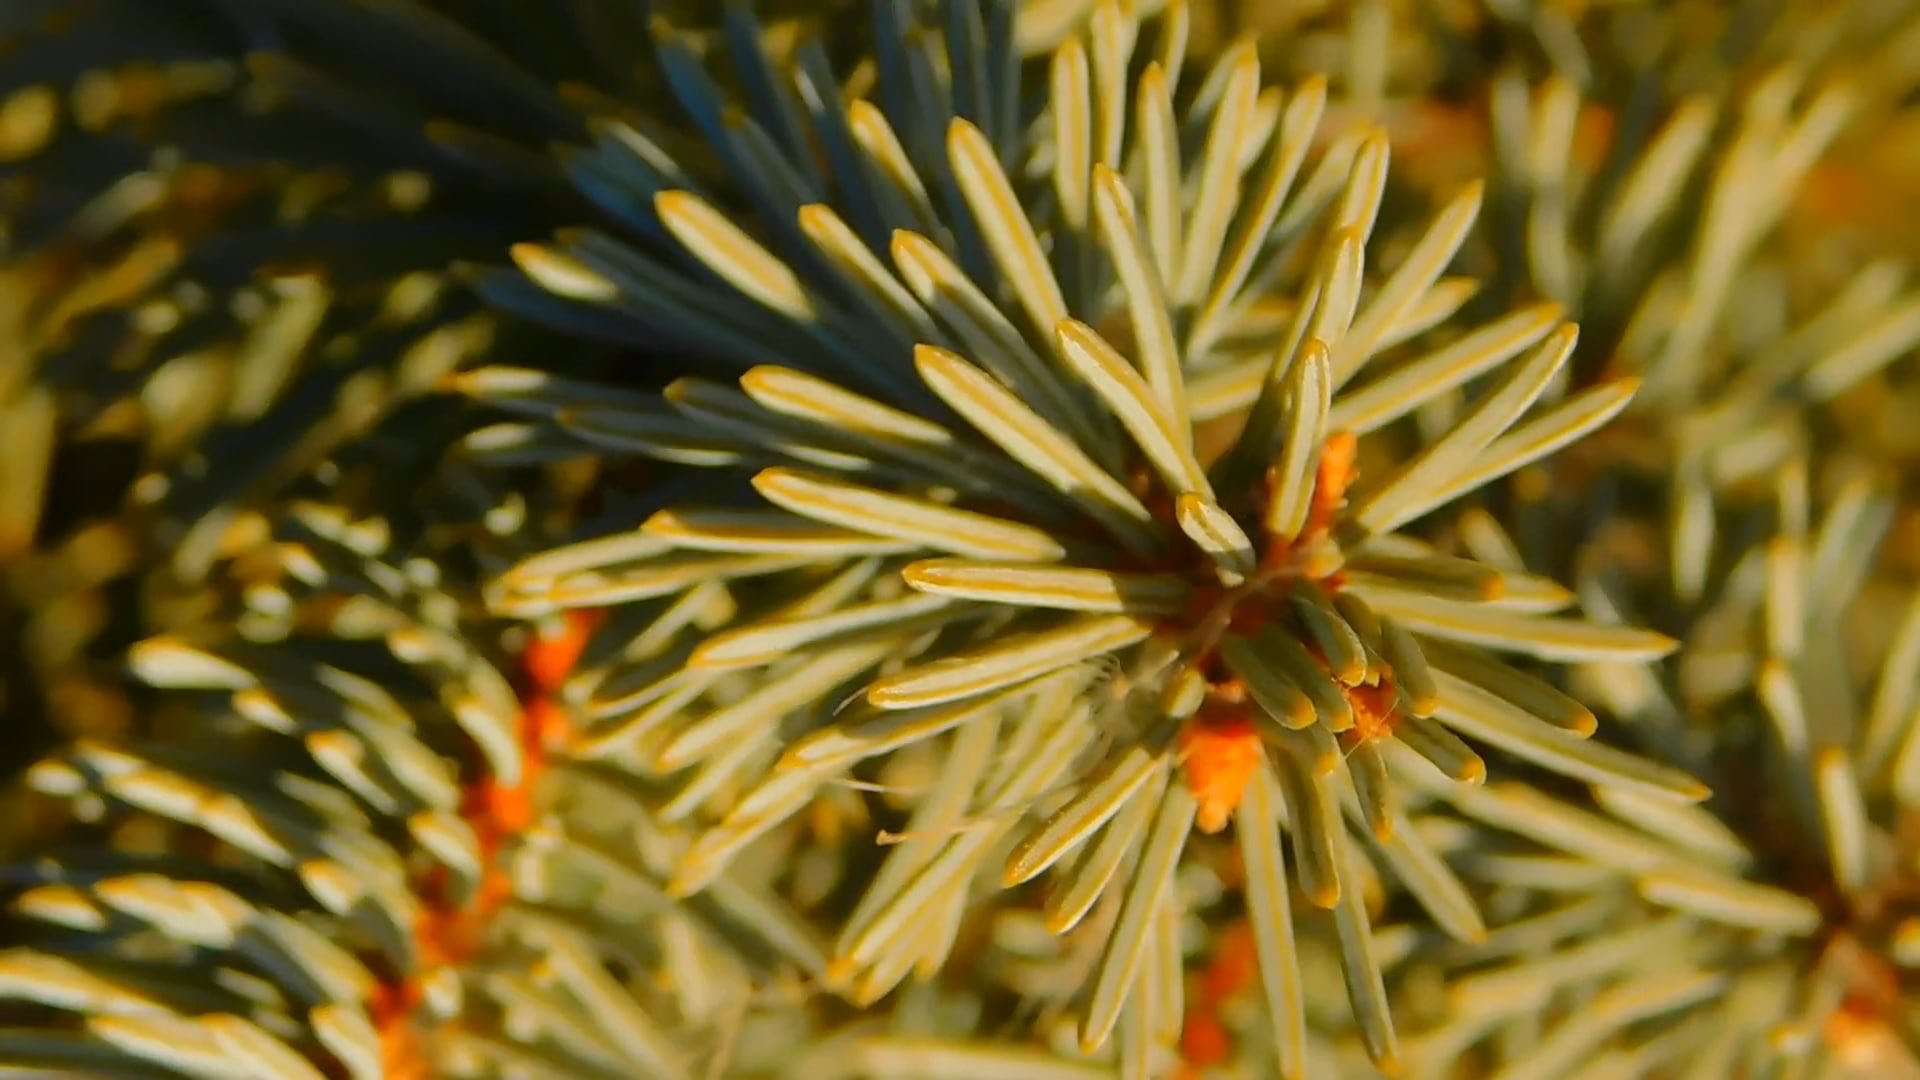 Close-Up View Of Spruce Leaves